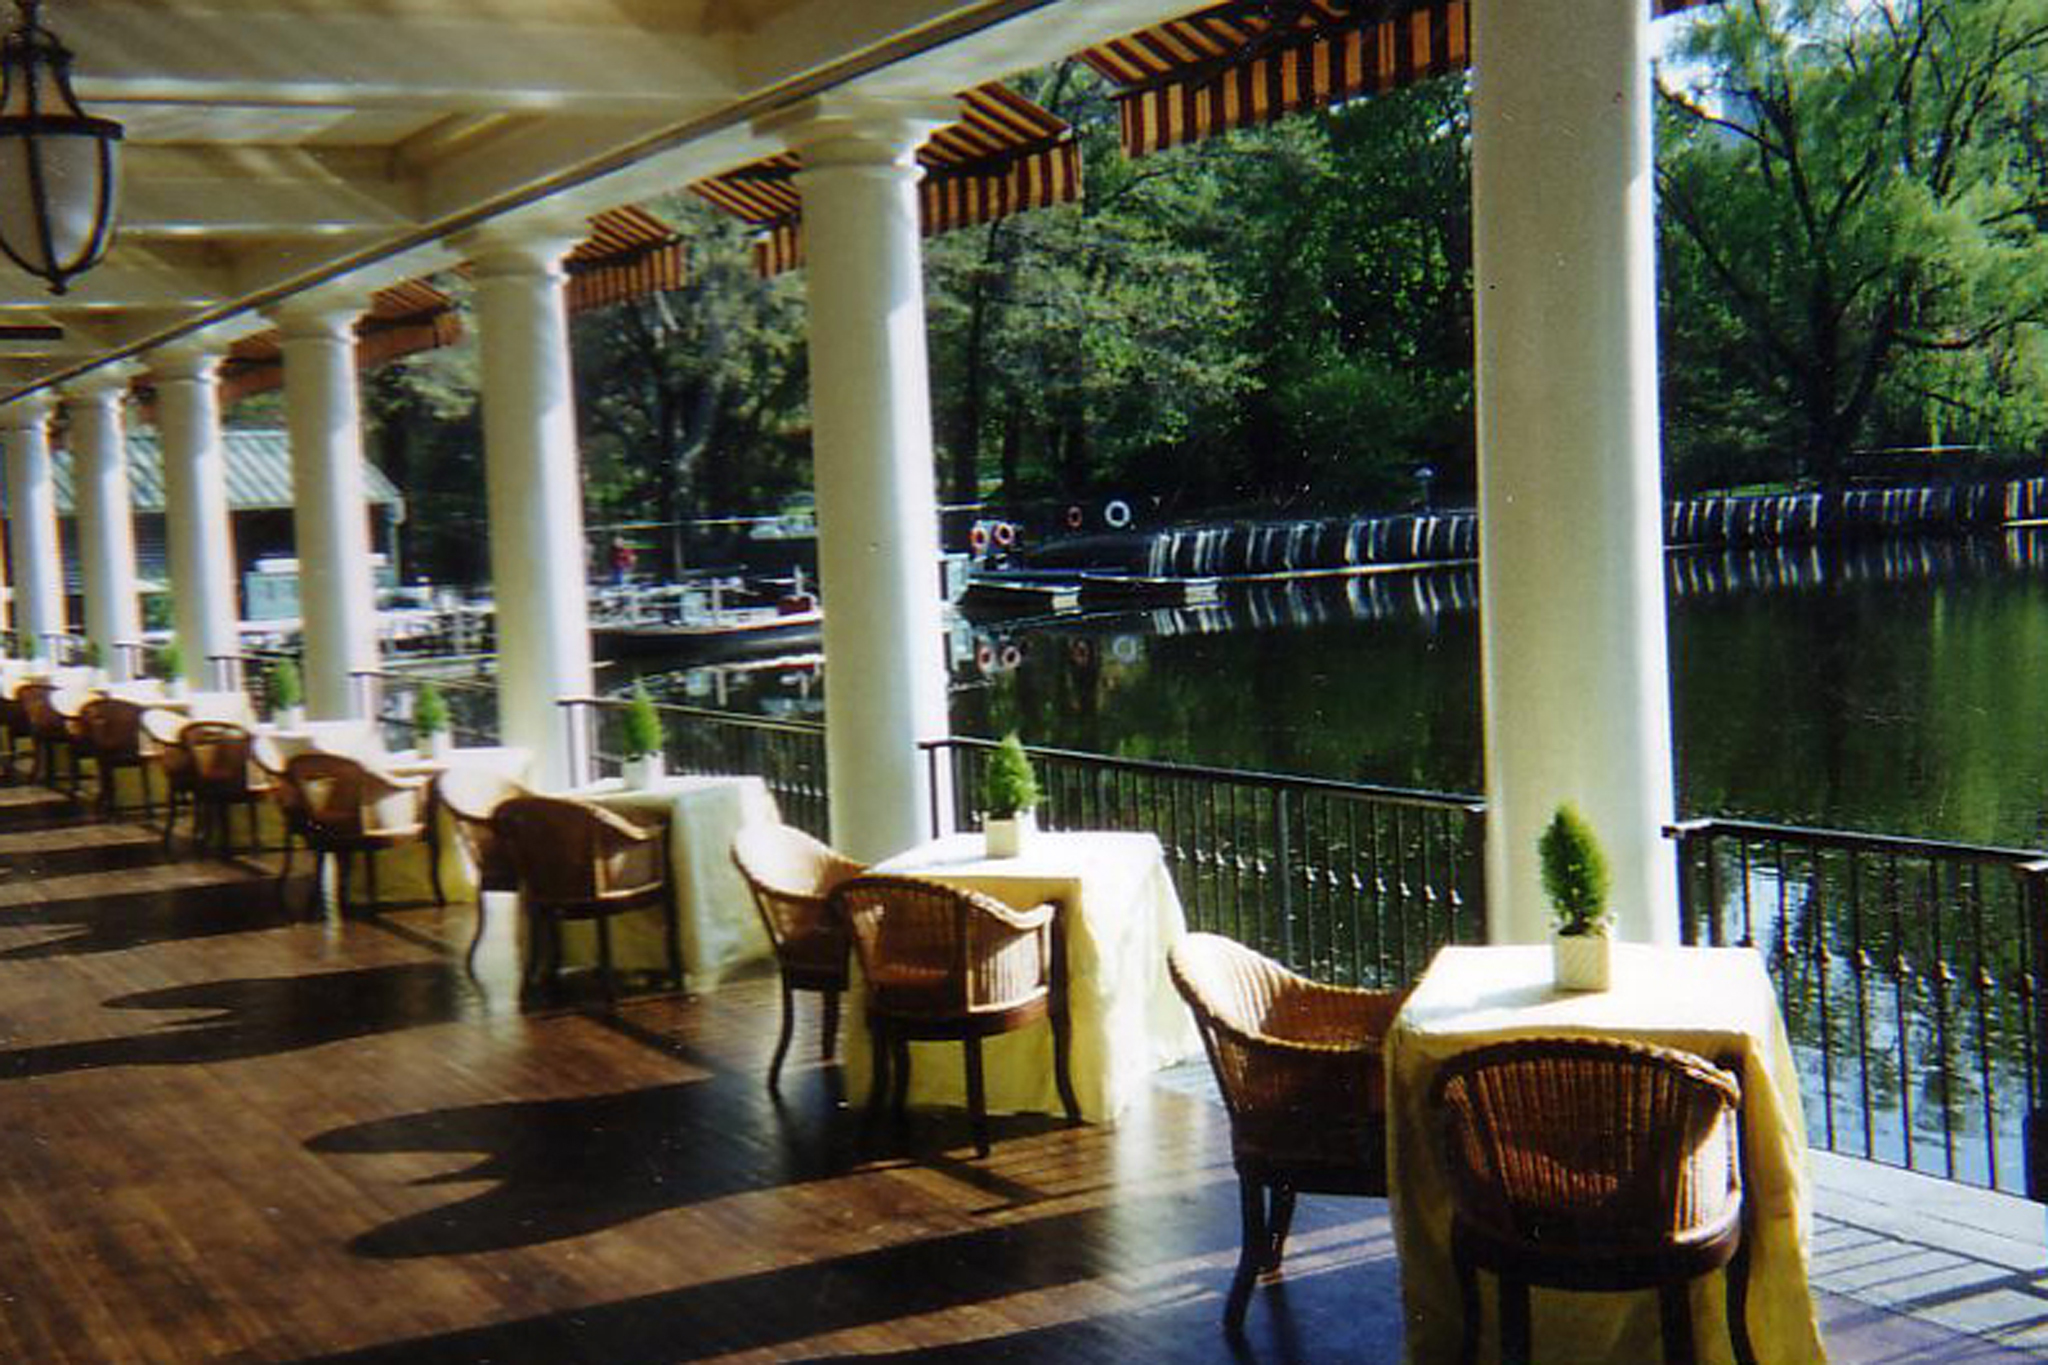 Boathouse Restaurant Nyc Dinner Menu